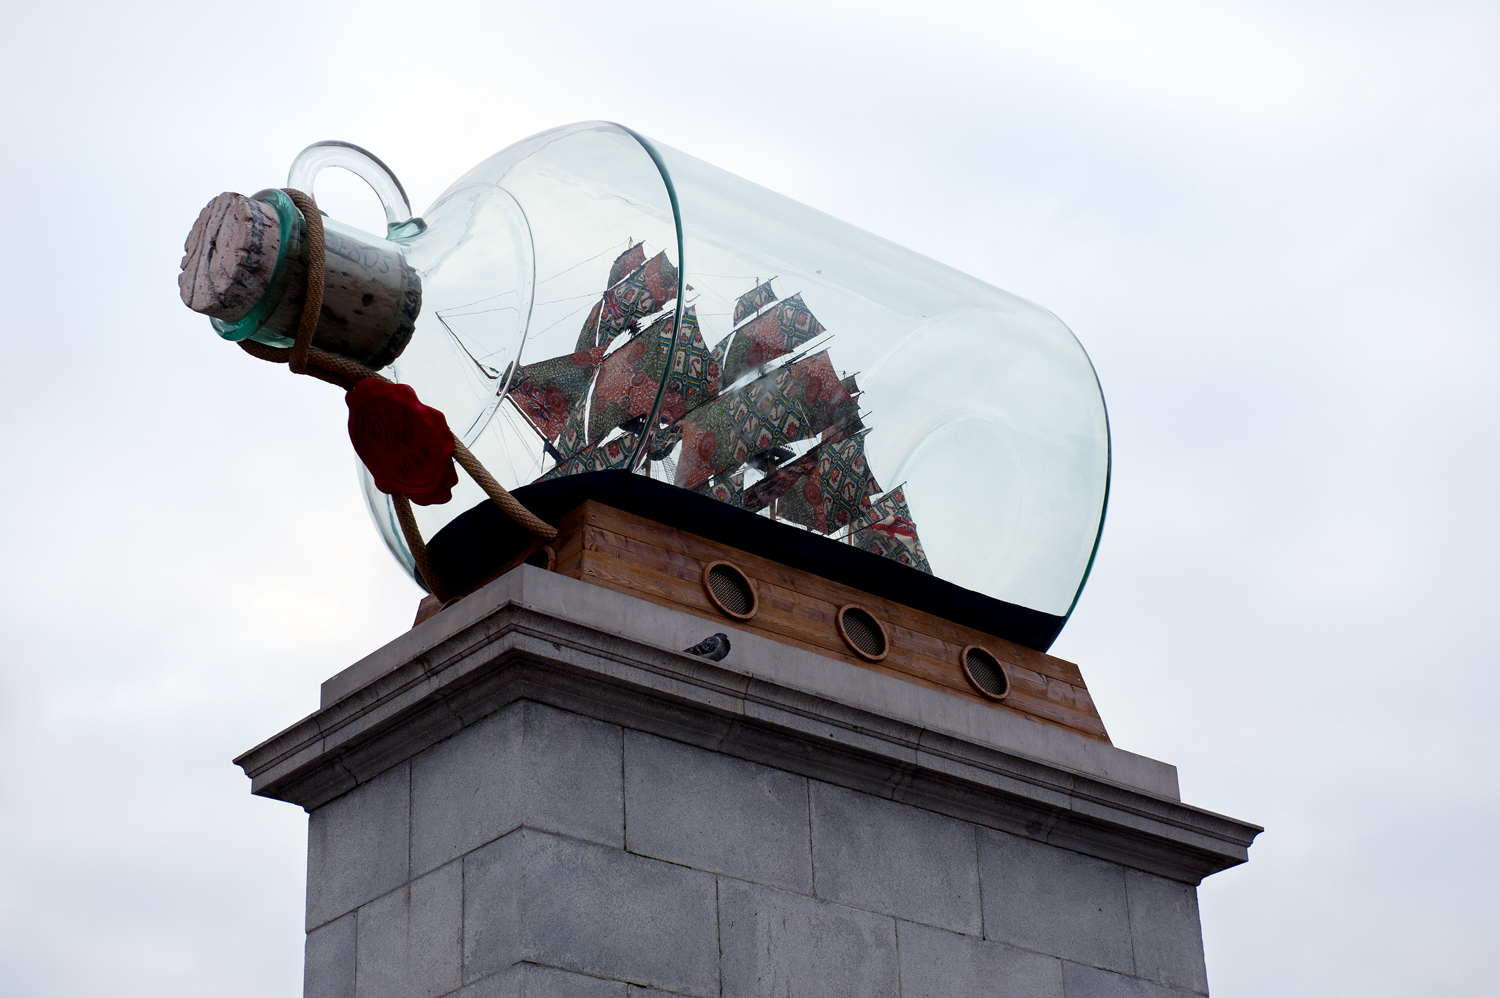 ship in a bottle [trafalgar square, westminster, london, england, 2011]